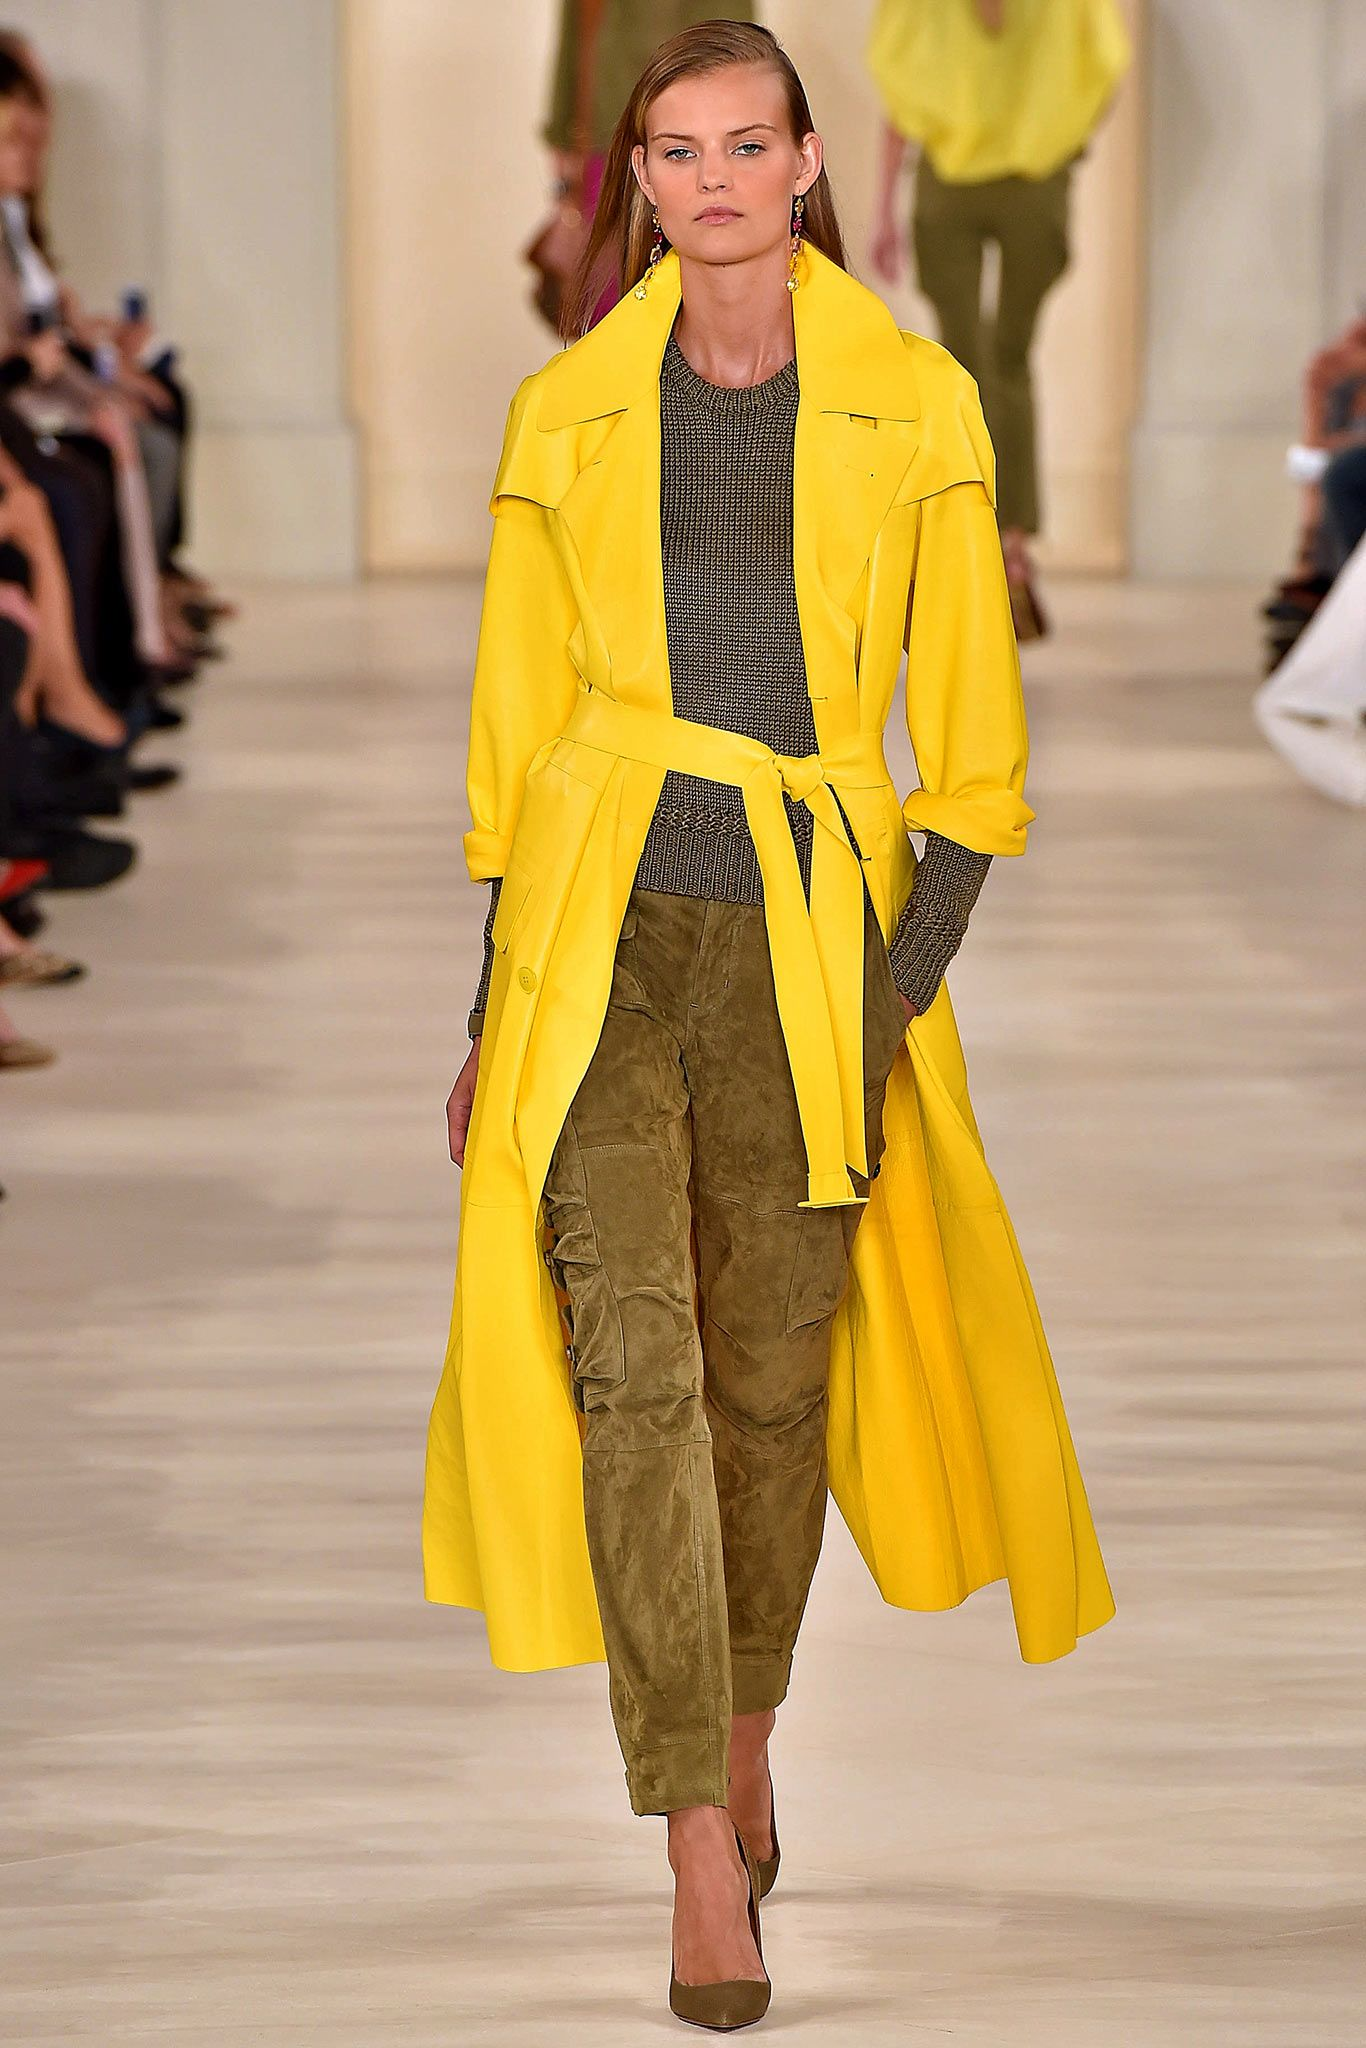 4b59a8c9ae3 Ralph Lauren Spring 2015 Ready-to-Wear Collection Runway Show ...